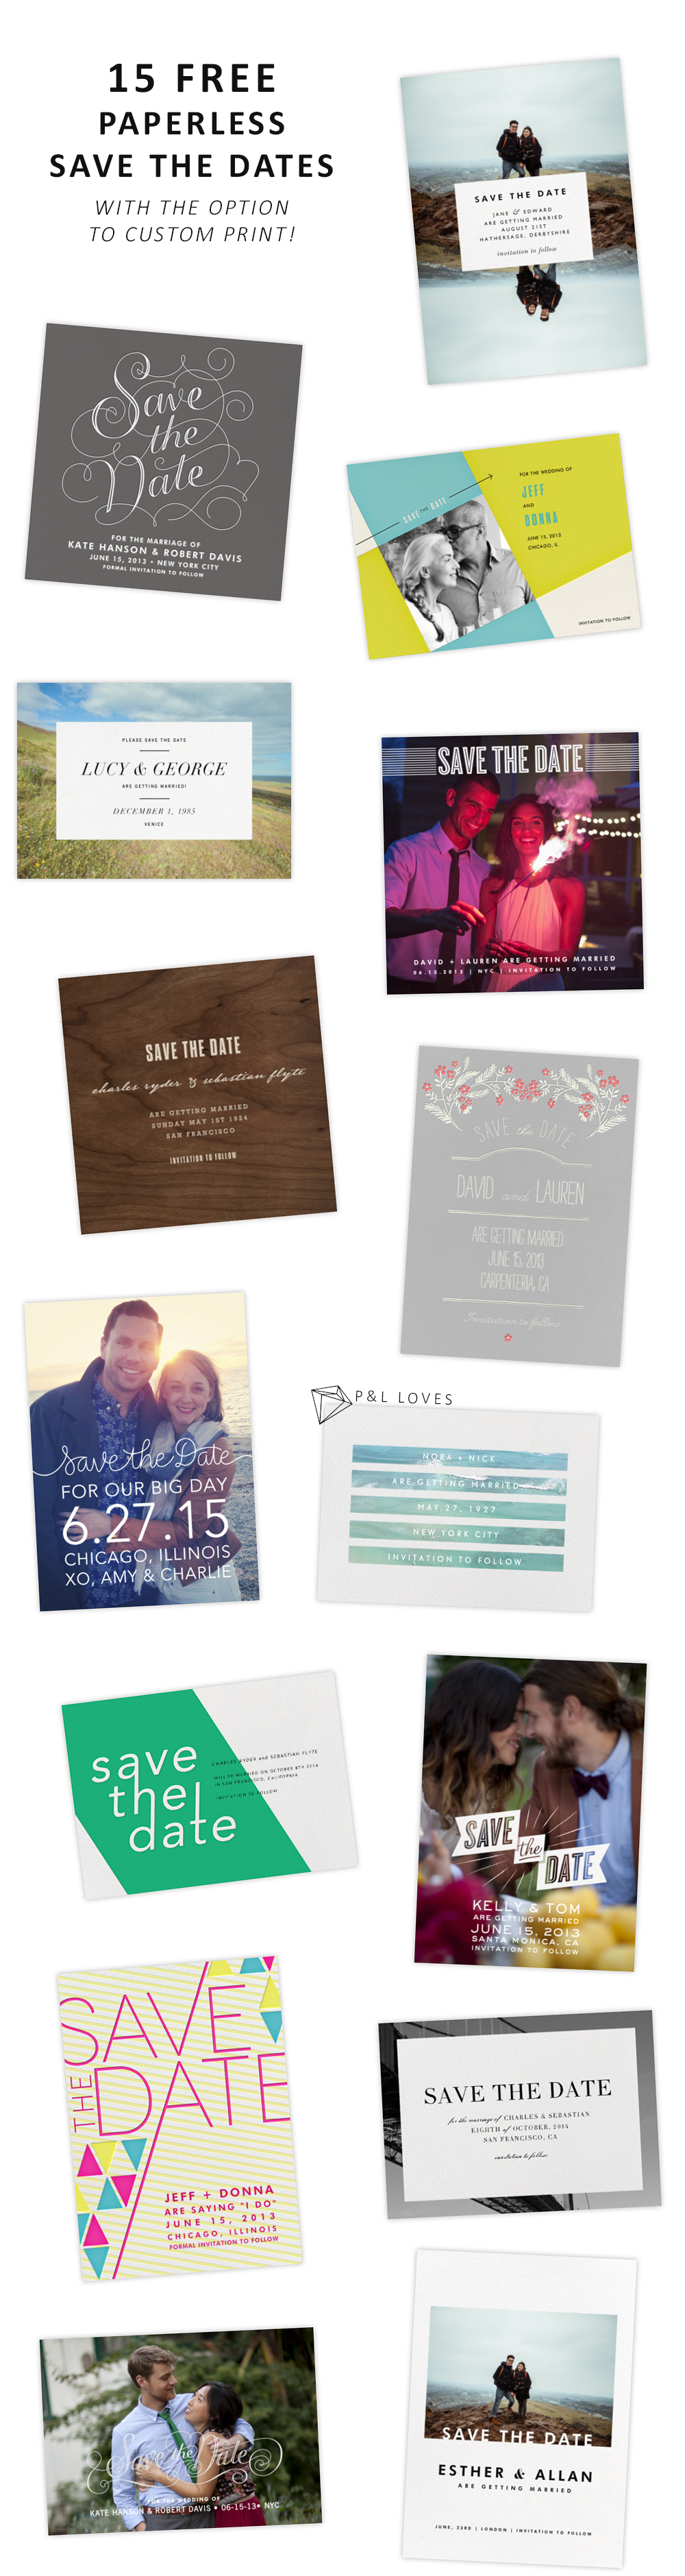 15 FREE Save the Dates from Paperless Post | Wedding Free Printables ...